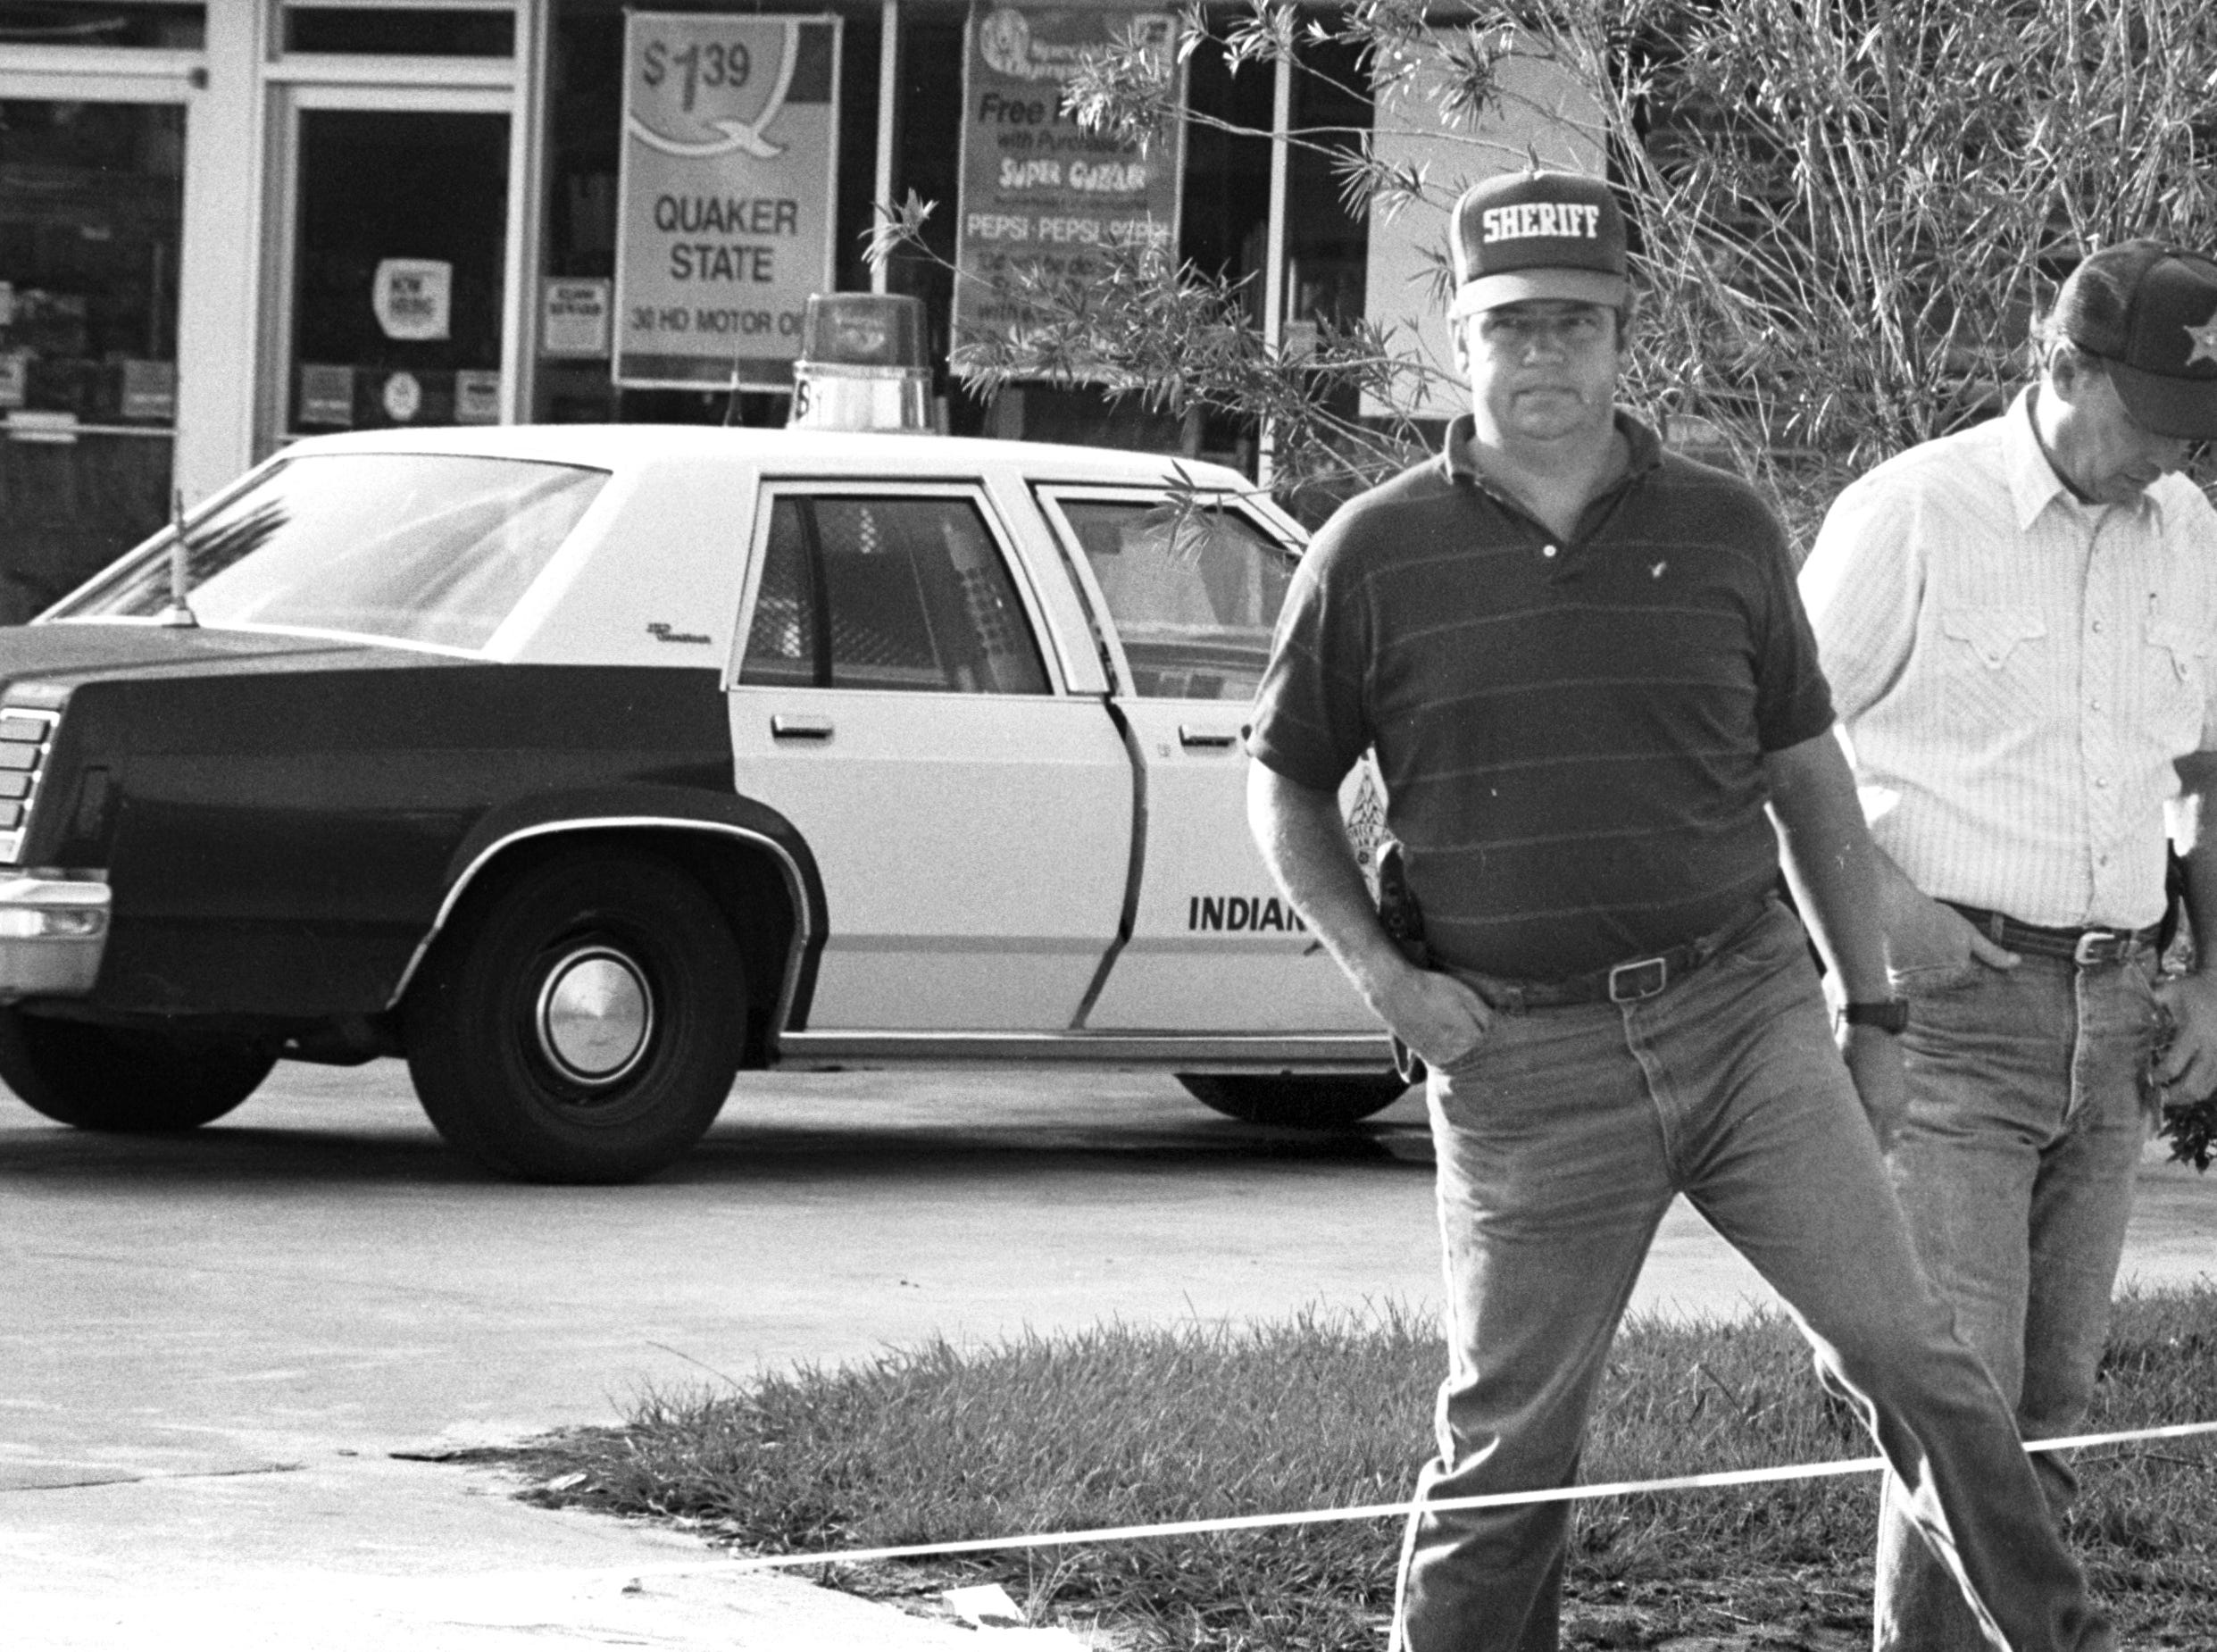 Indian River County Sheriff Tim Dobeck (left) and Undersheriff Roy Raymond were seen at Zippy Mart, 82nd Avenue at State Road 60, where on Sept. 23, 1986, an early morning shooting killed Deputy Richard Raczkoski, 29. He was shot to death by William Reaves, a Vietnam veteran and ex-convict. Reaves was convicted and sentenced to Florida's Death Row.